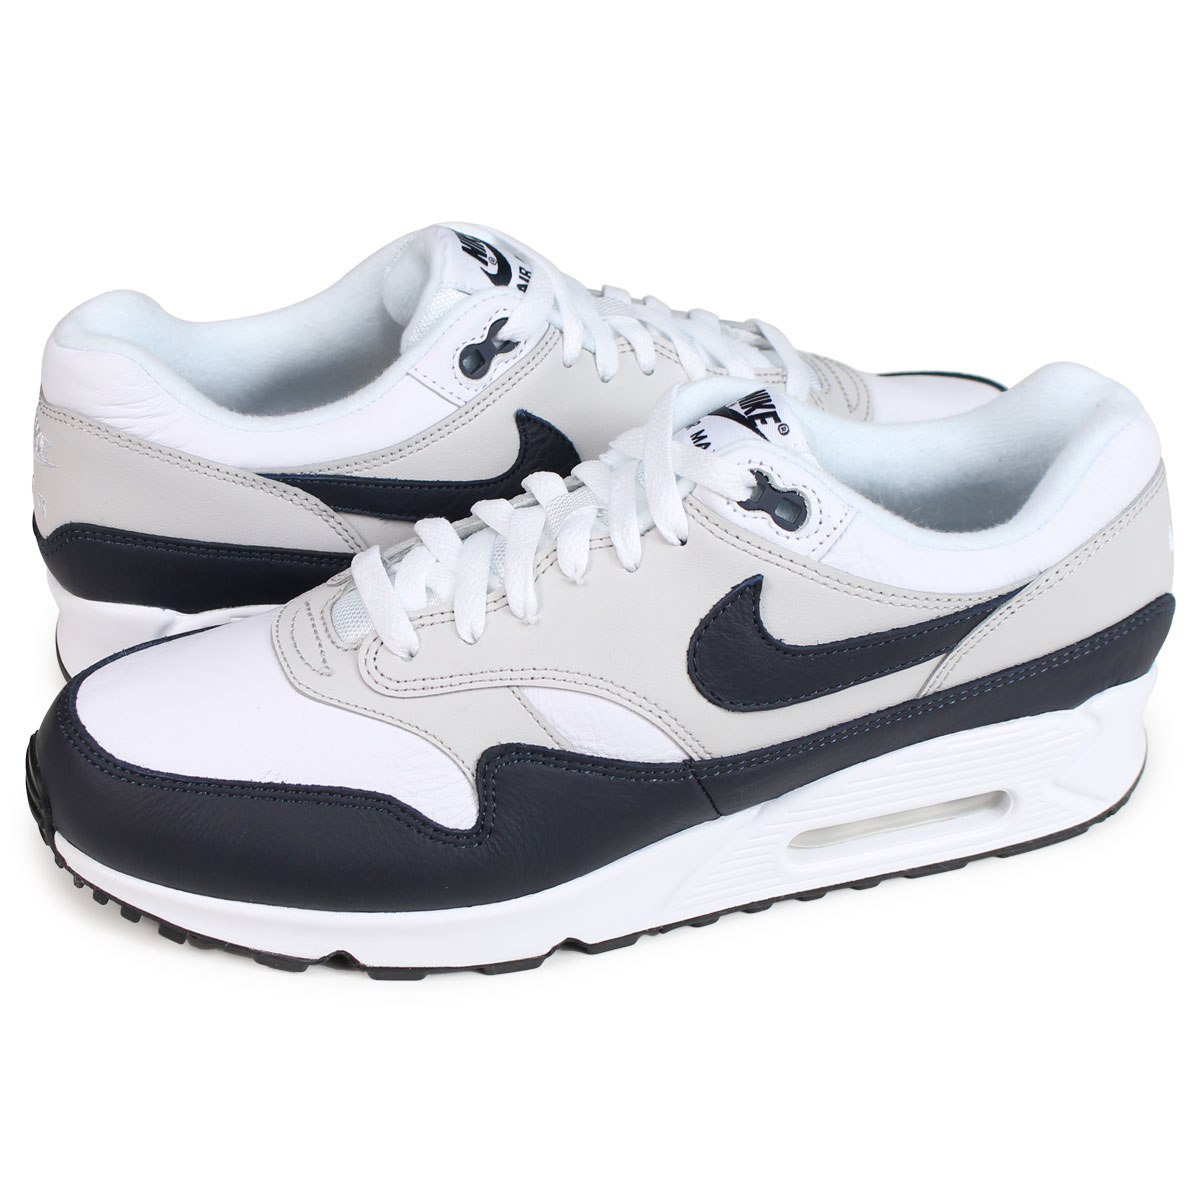 outlet store 7f382 2c56a  brand NIKE getting high popularity from sneakers freak . The model who put AIR  MAX 90 and 1 ...